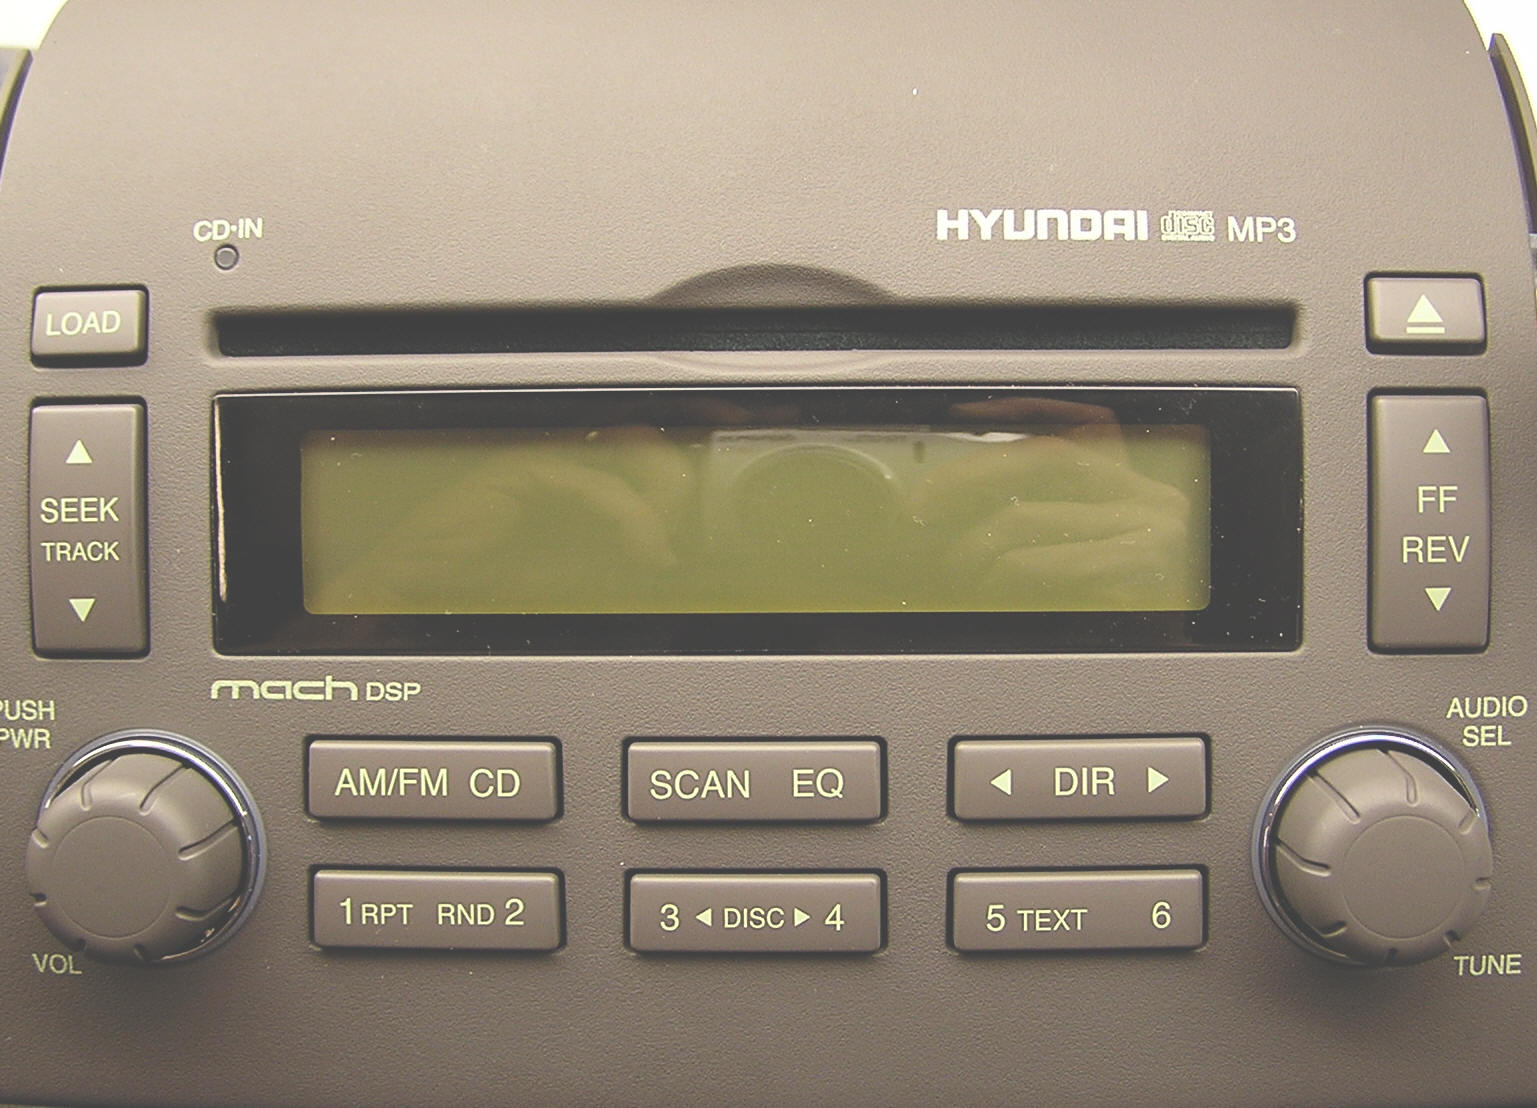 Hyundai Sonata Car Radio Removal and Repair